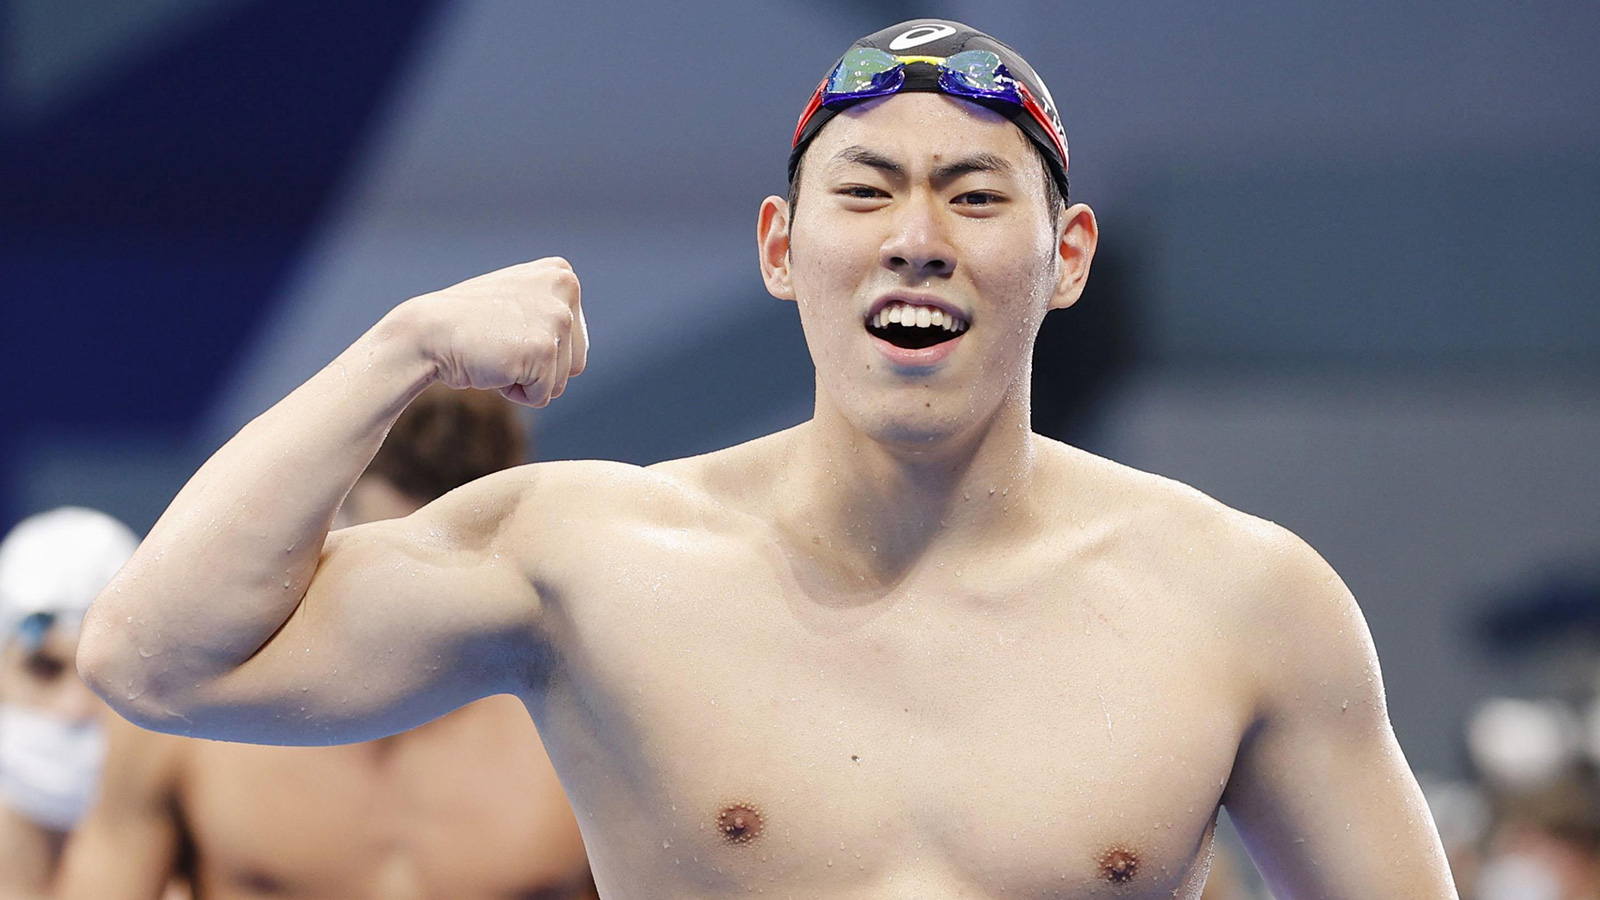 Tomoru Honda of Japan celebrates after winning silver in the 200m butterfly final even on July 28.